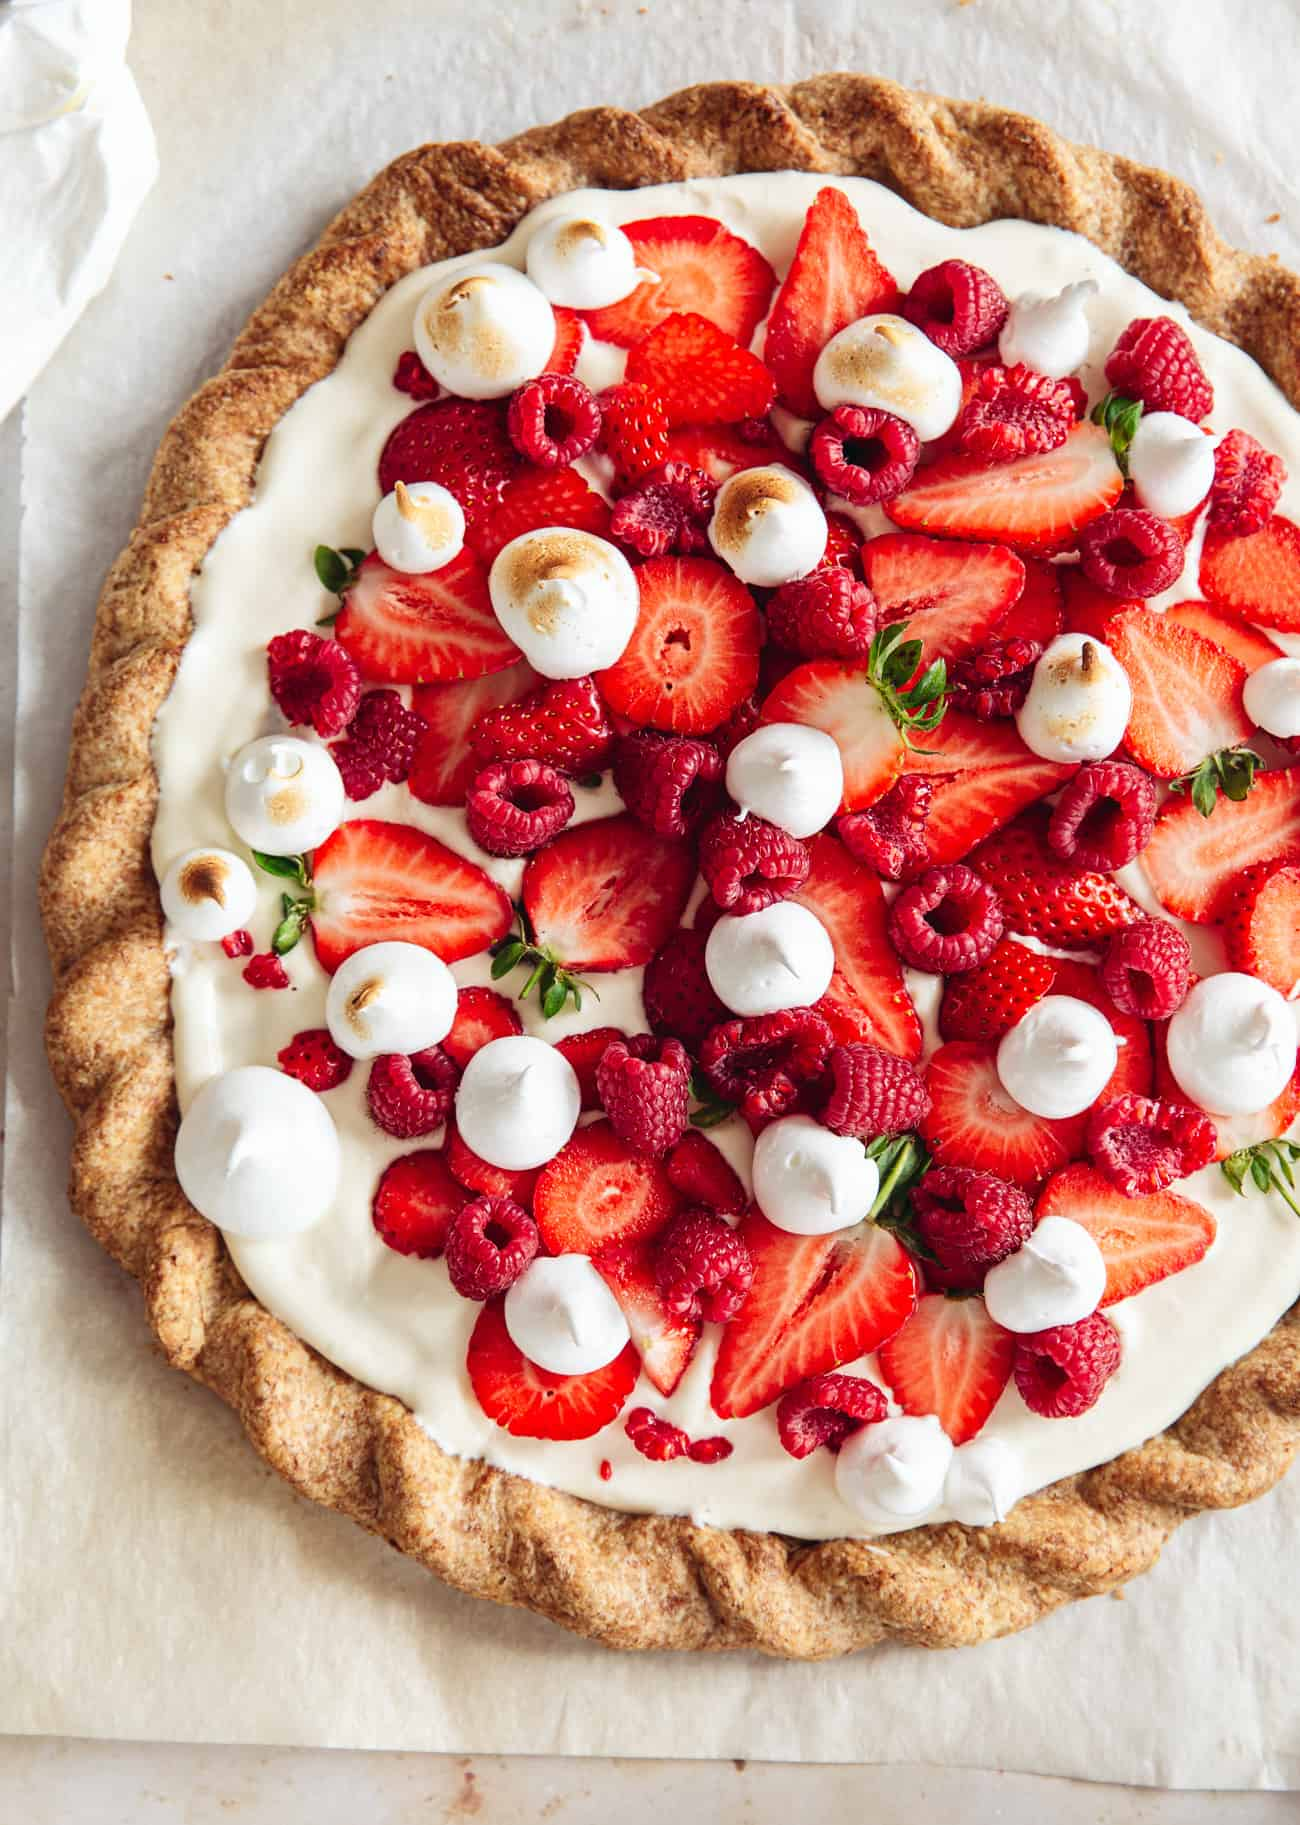 Eton mess tart with strawberries, raspberries and torched meringue